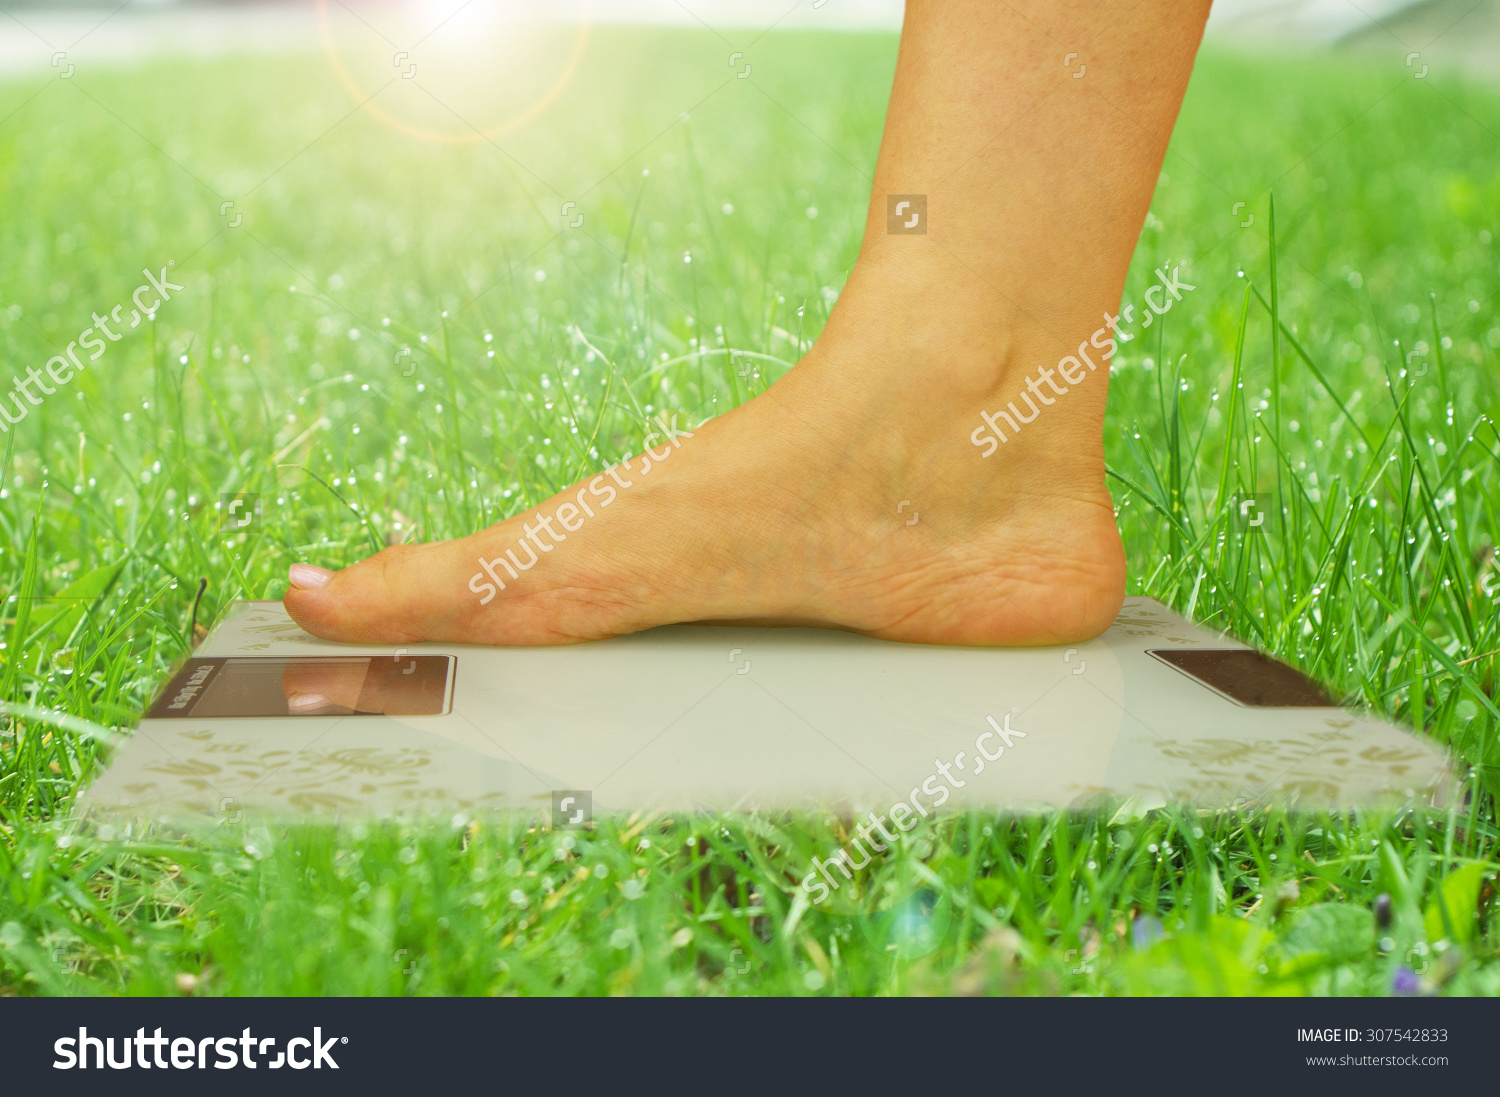 stock-photo-foot-on-the-scale-on-grass-background-nature-307542833